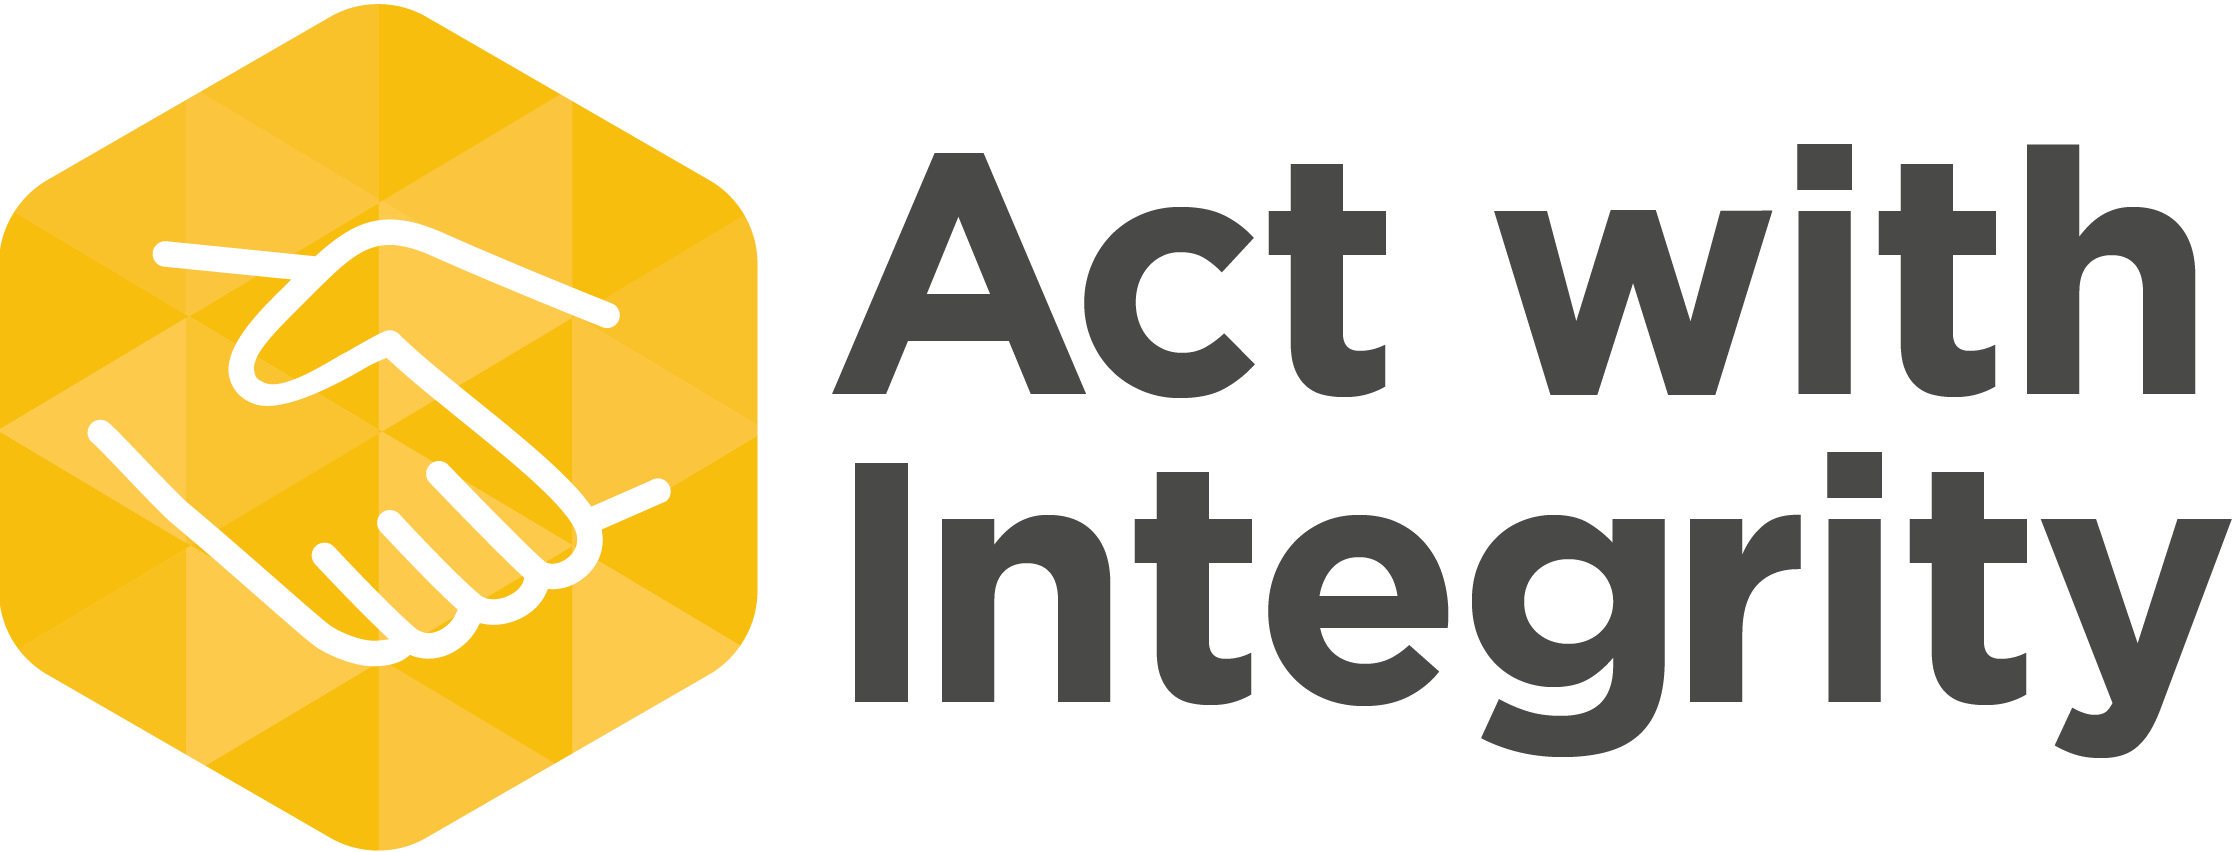 Act_Integrity-01_190828_103919.png